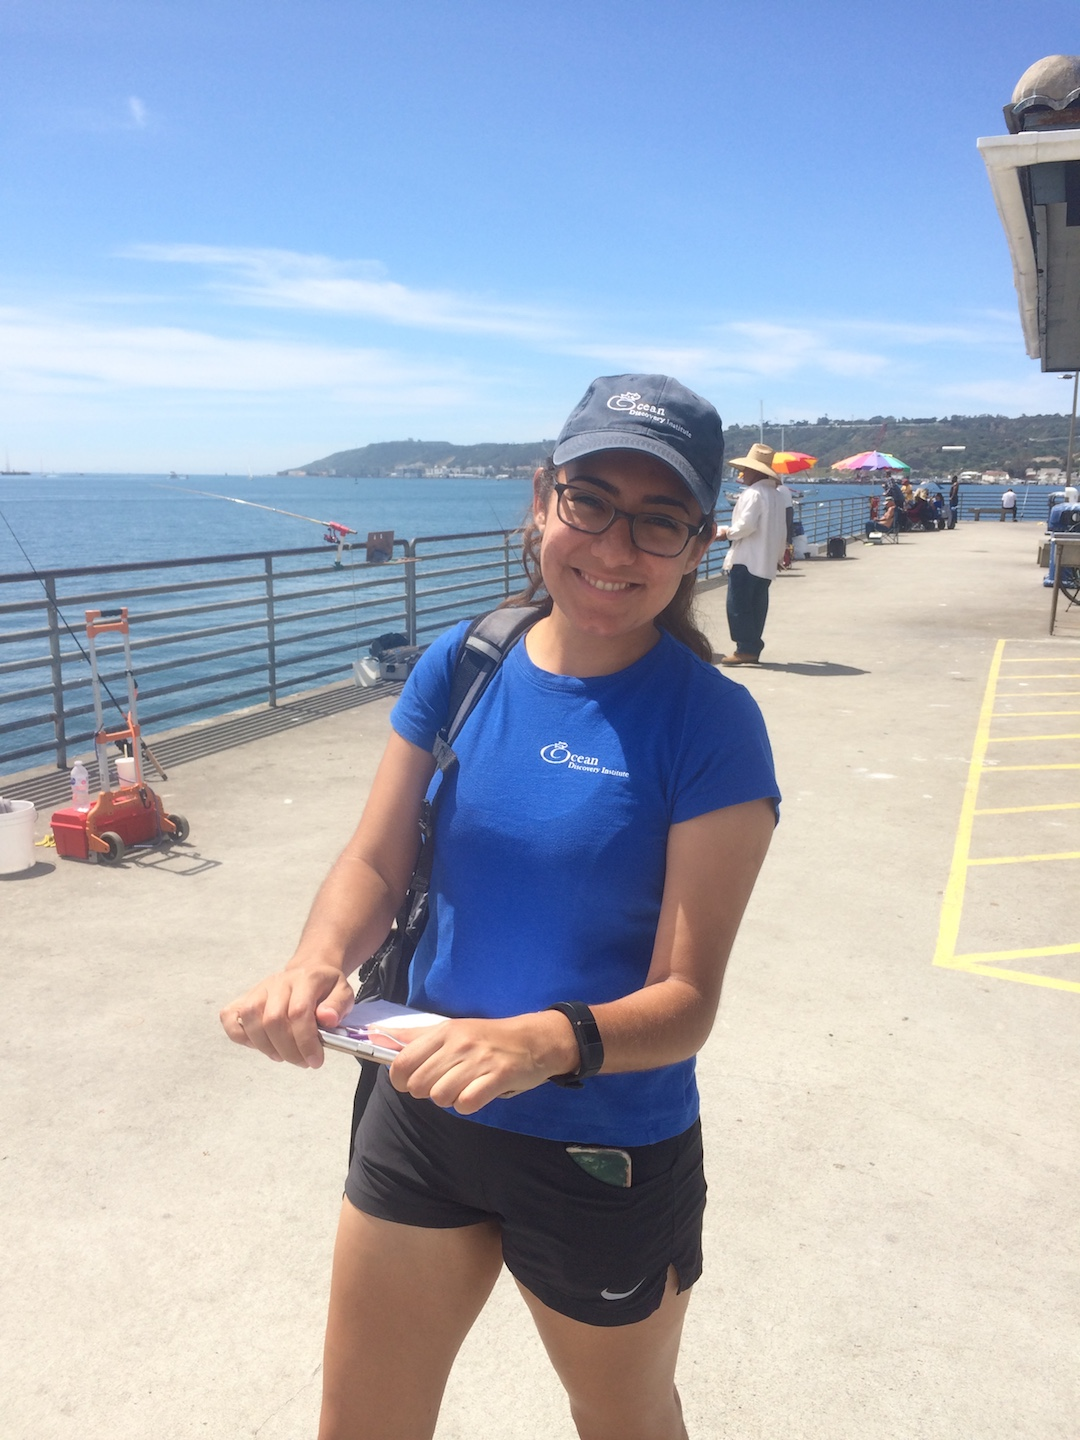 Intern Lupita Sandoval at Shelter Island pier on a sunny Monday in April. Photo taken by Nina Venuti.